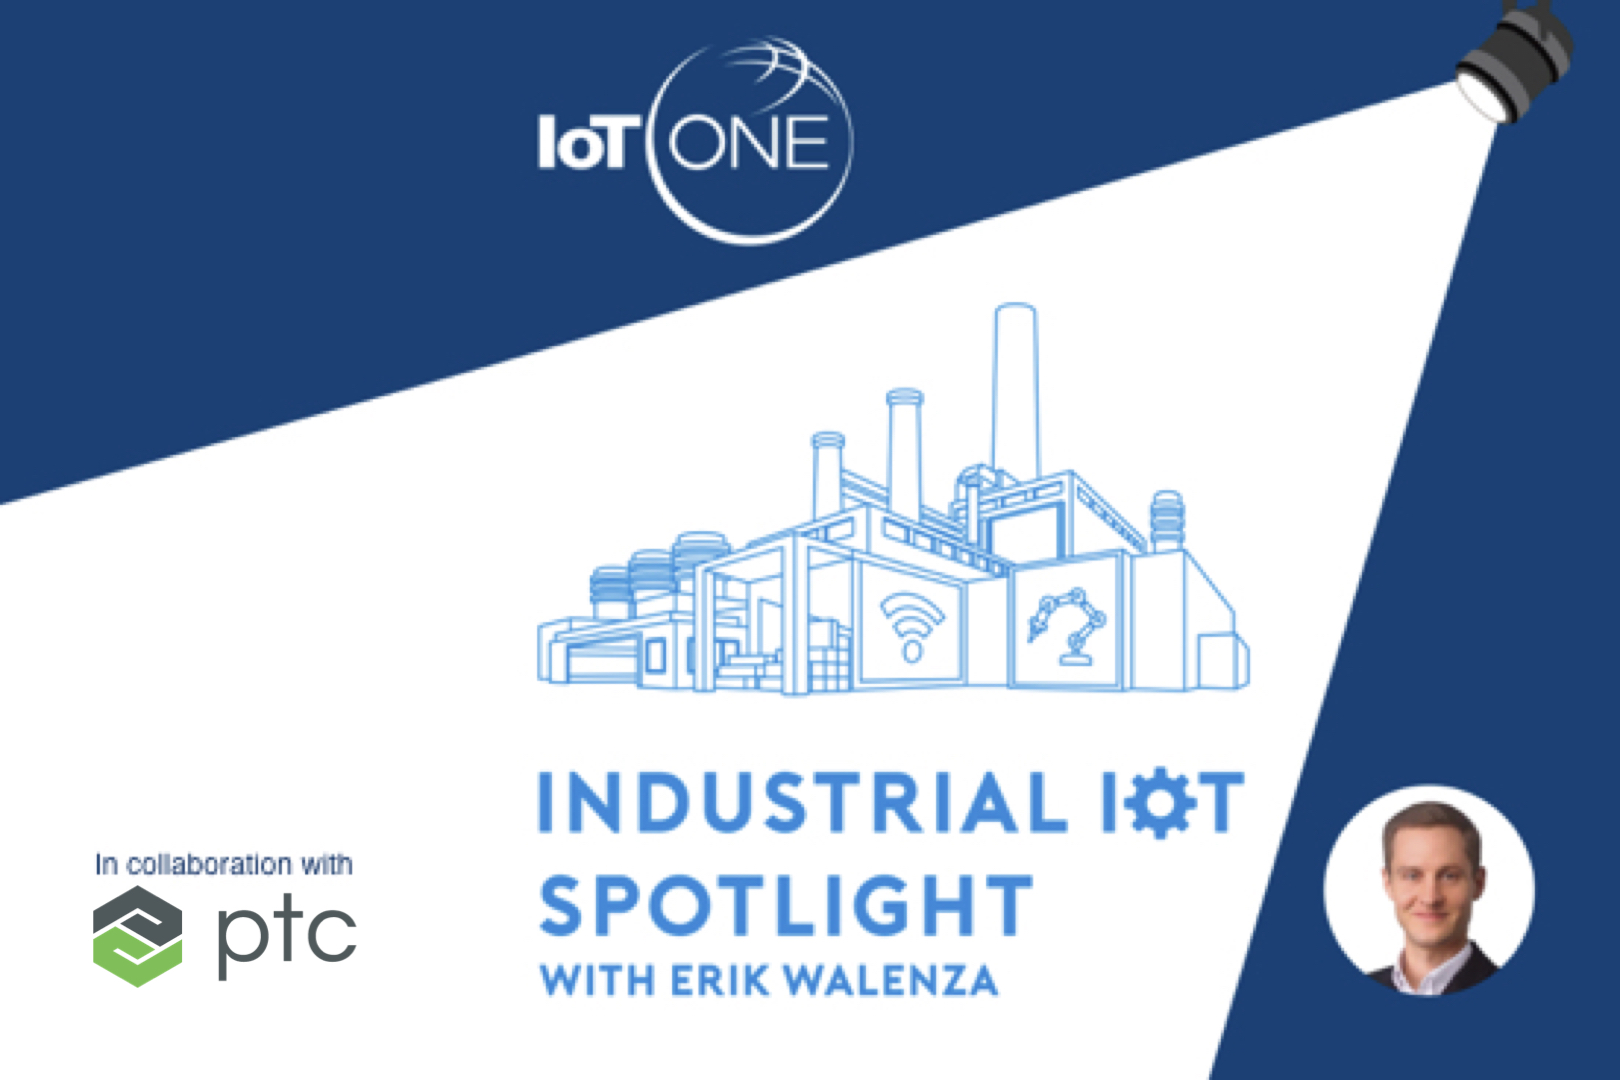 PTC x IoT ONE IIoT Spotlight Podcast EP049 - How Merck uses open innovation to improve R&D efficiency – An Interview with Sophie Sun of Merck Group show art